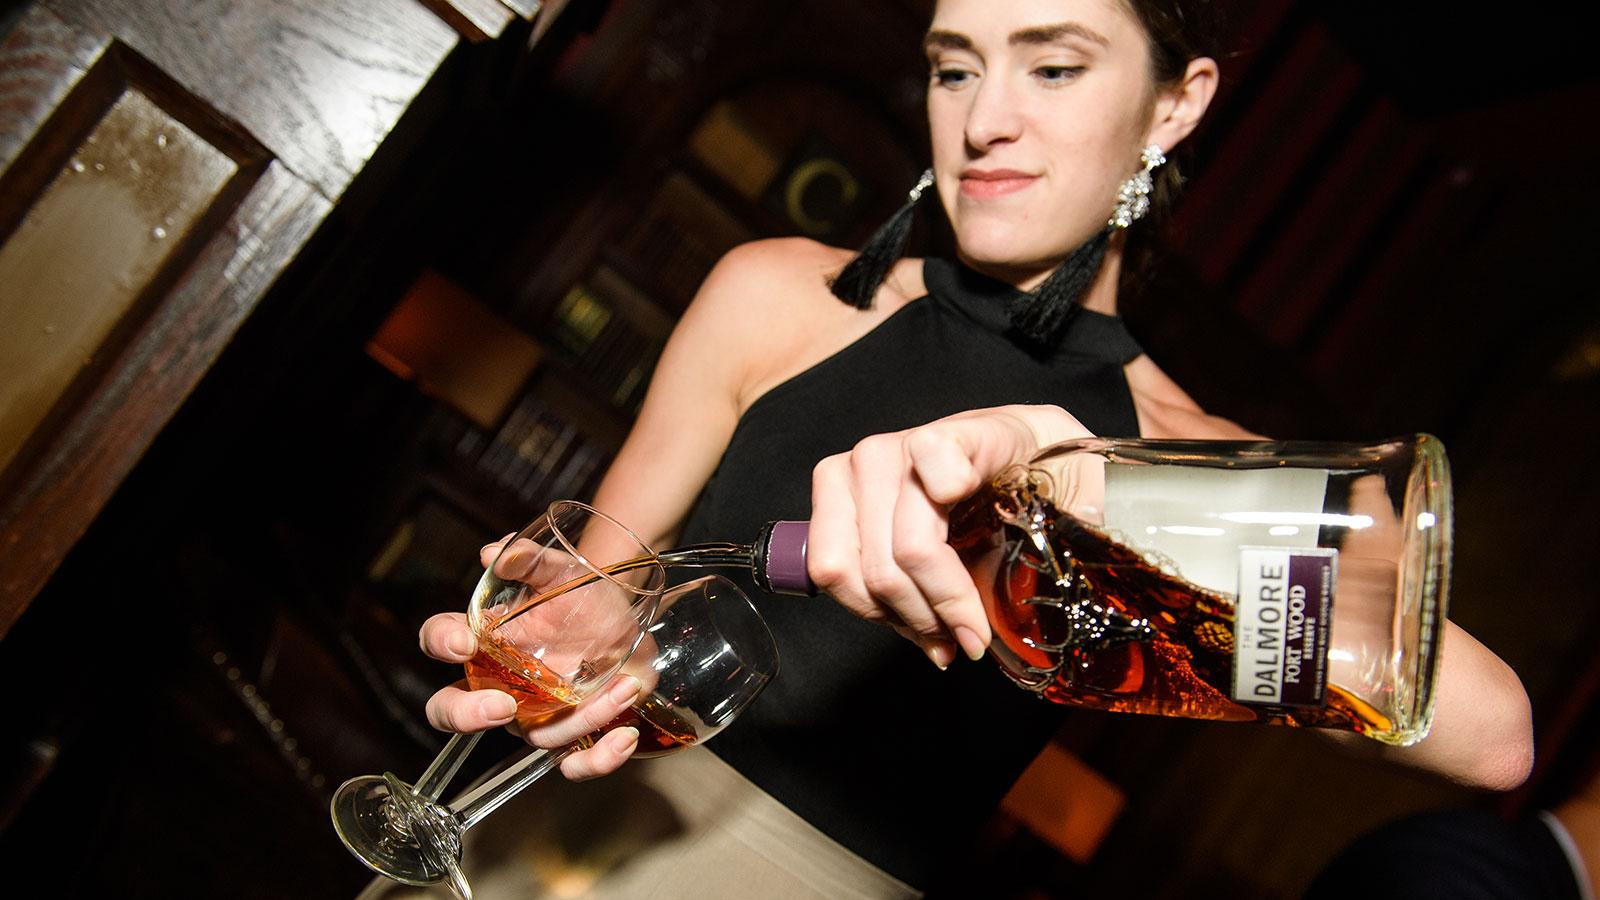 A representative from The Dalmore Scotch pours the Port Wood Reserve.